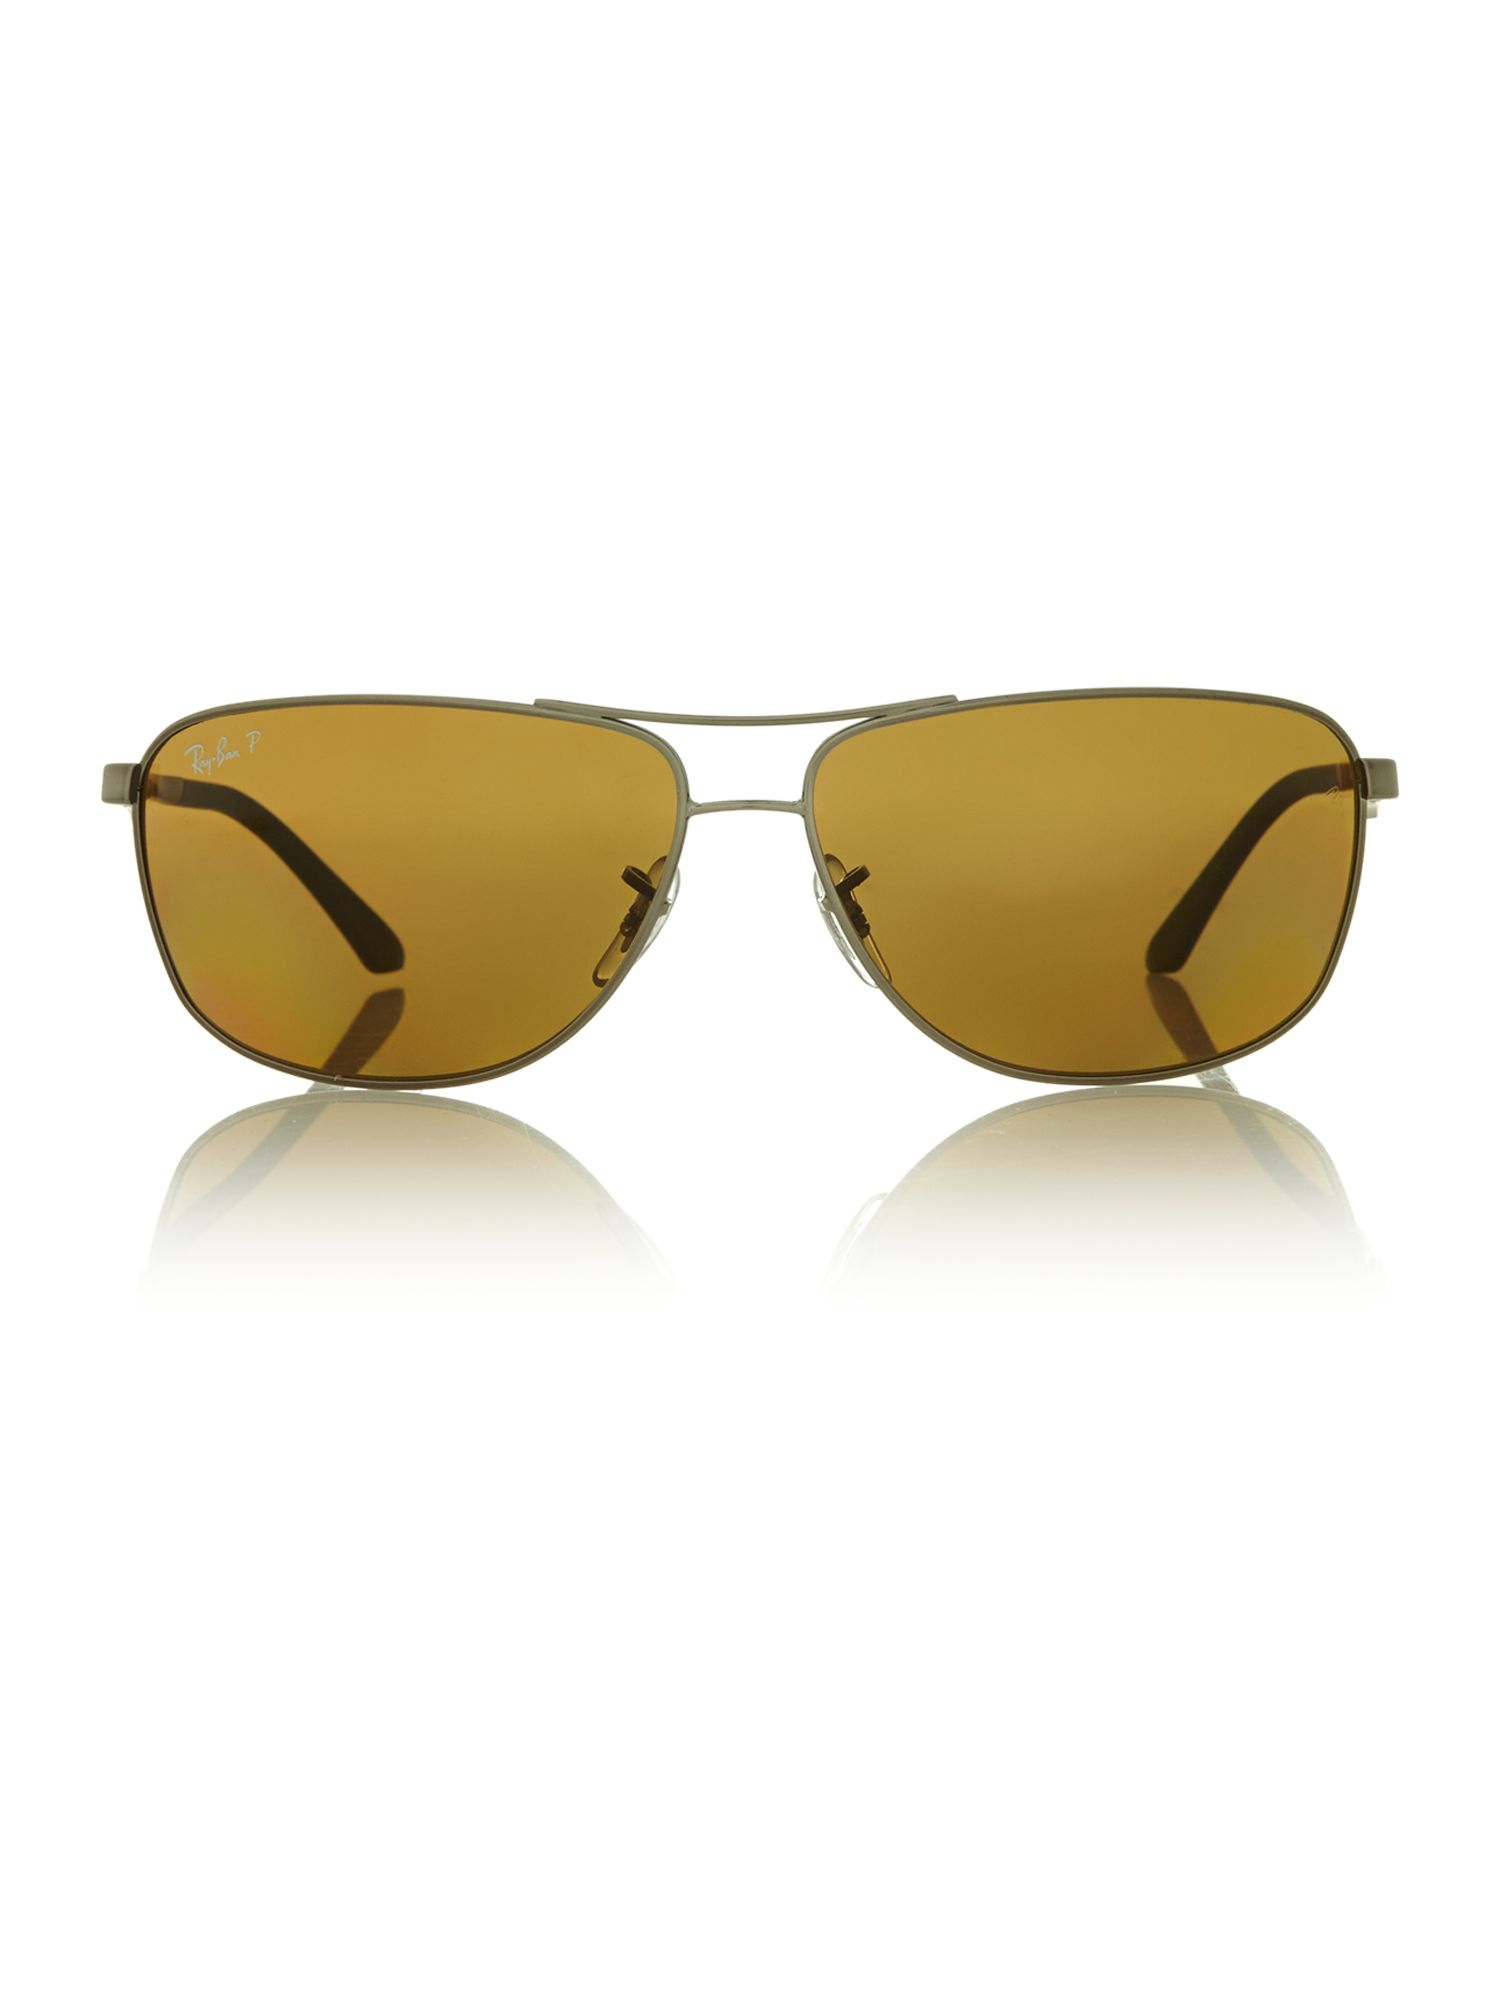 Unisex RB3506 lifestyle sunglasses